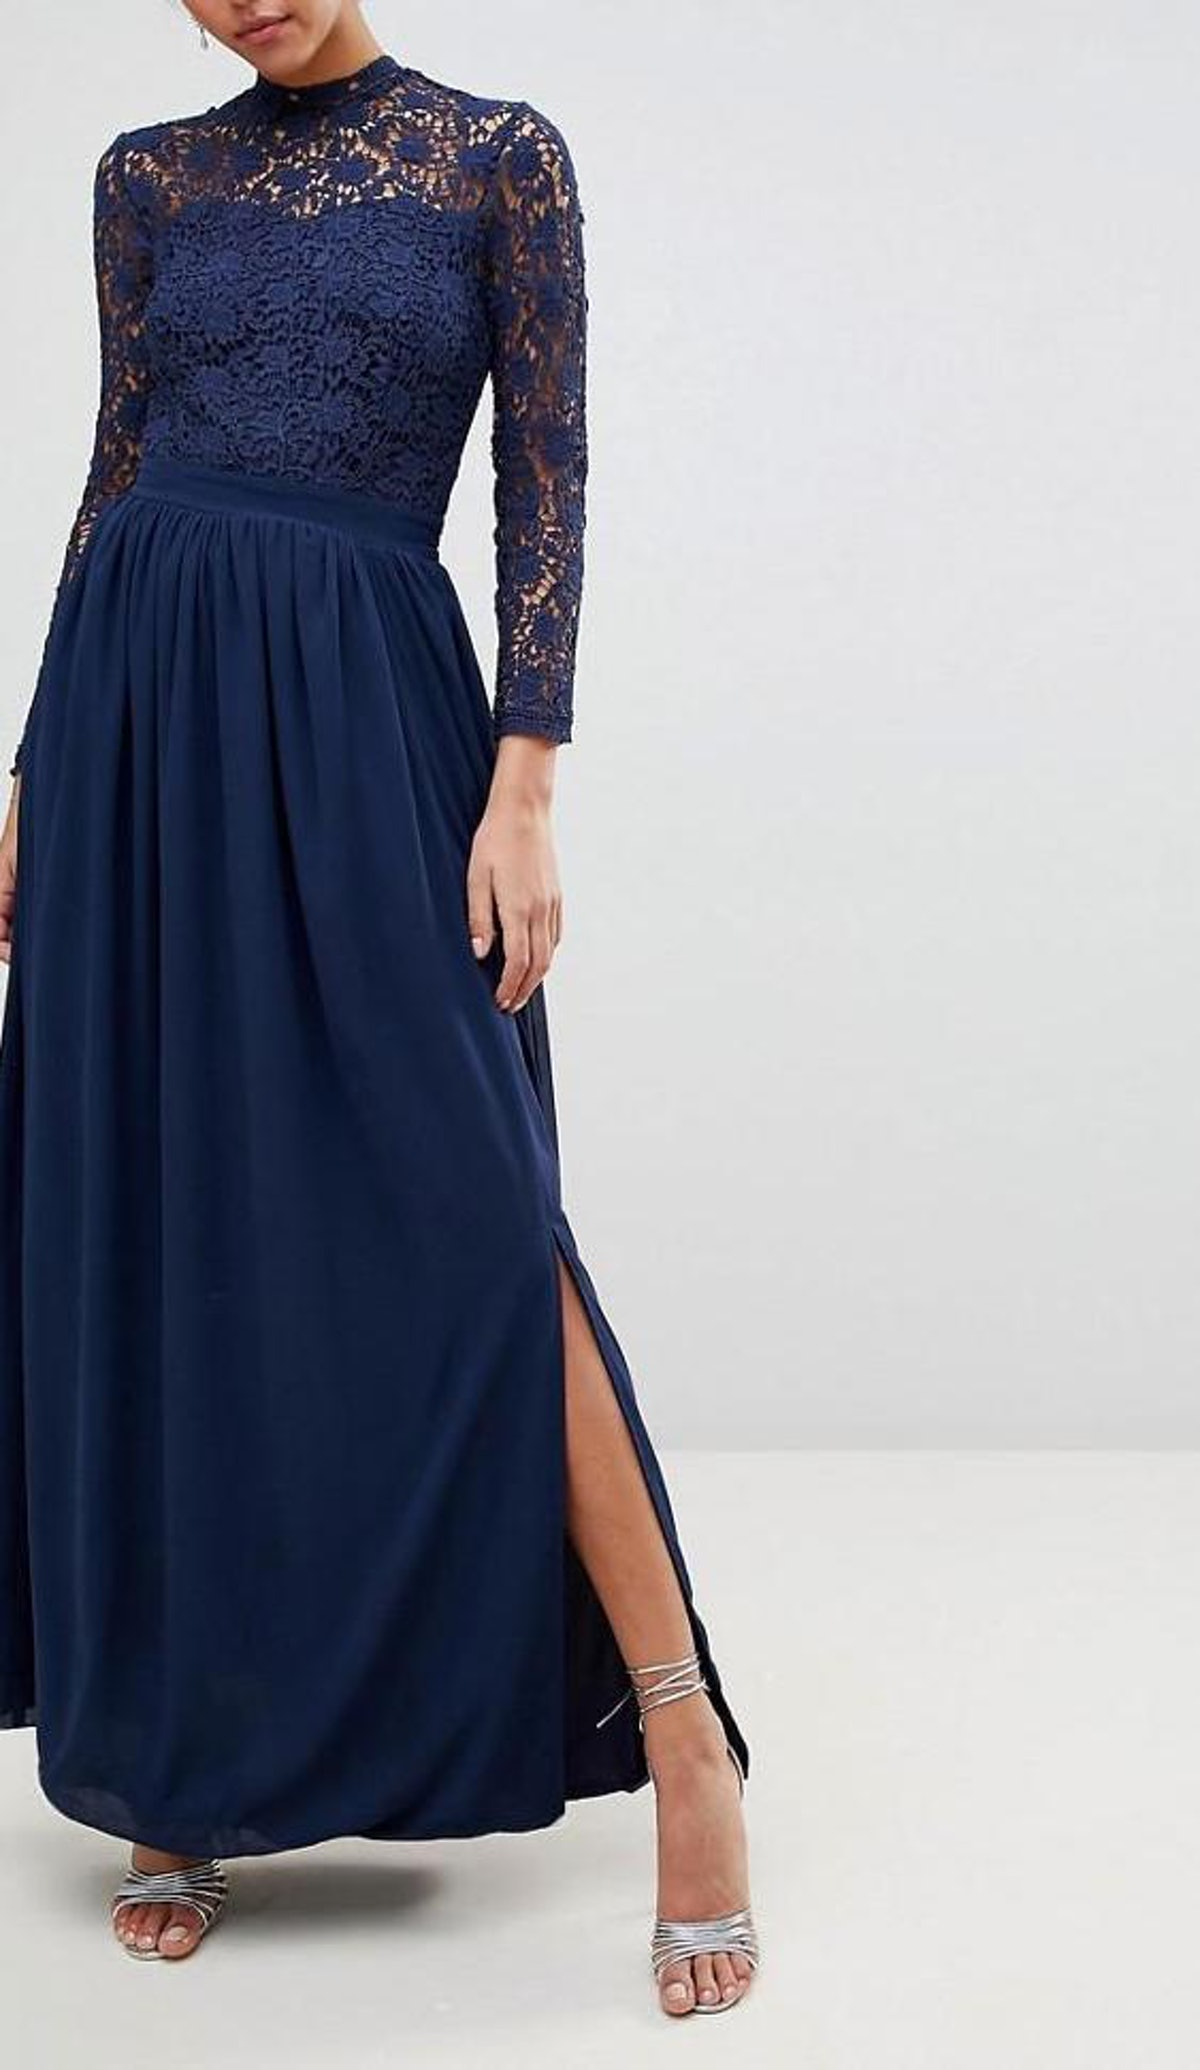 Club L High Neck Crochet Lace Maxi Dress With Long Sleeves